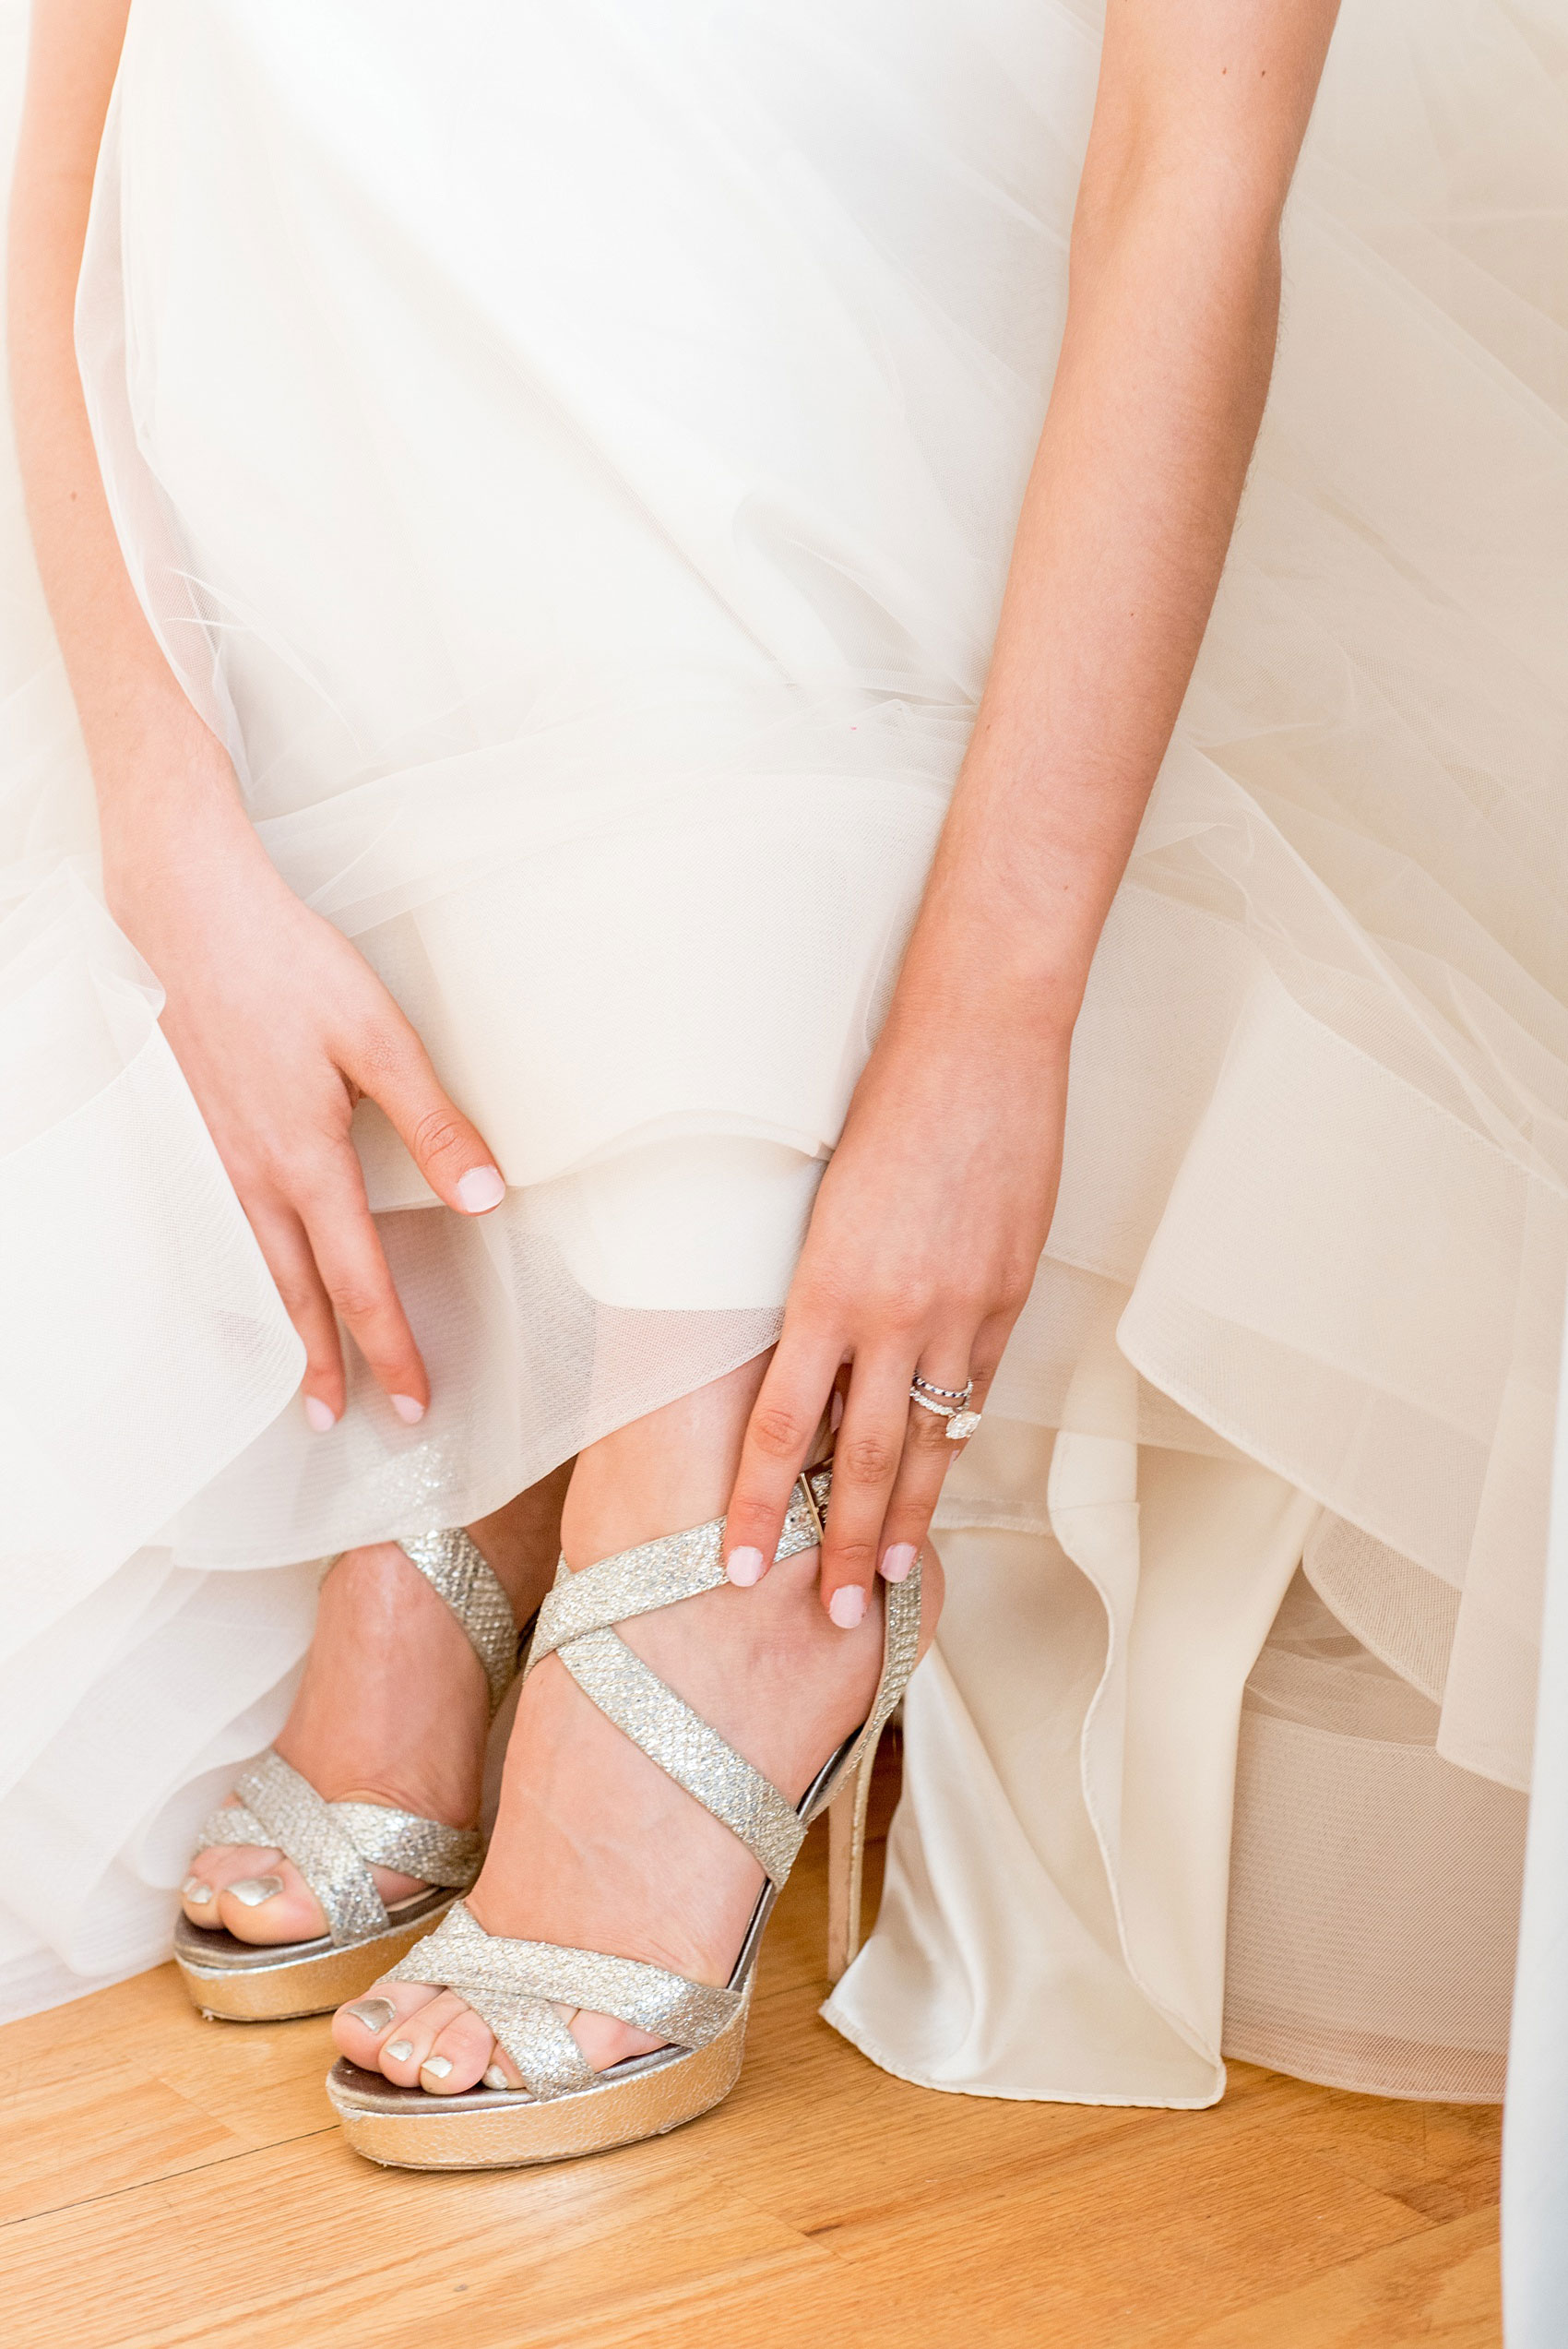 The Glass Box Raleigh wedding photos by Mikkel Paige Photography. Detail picture of the bride's metallic Jimmy Choo shoes.